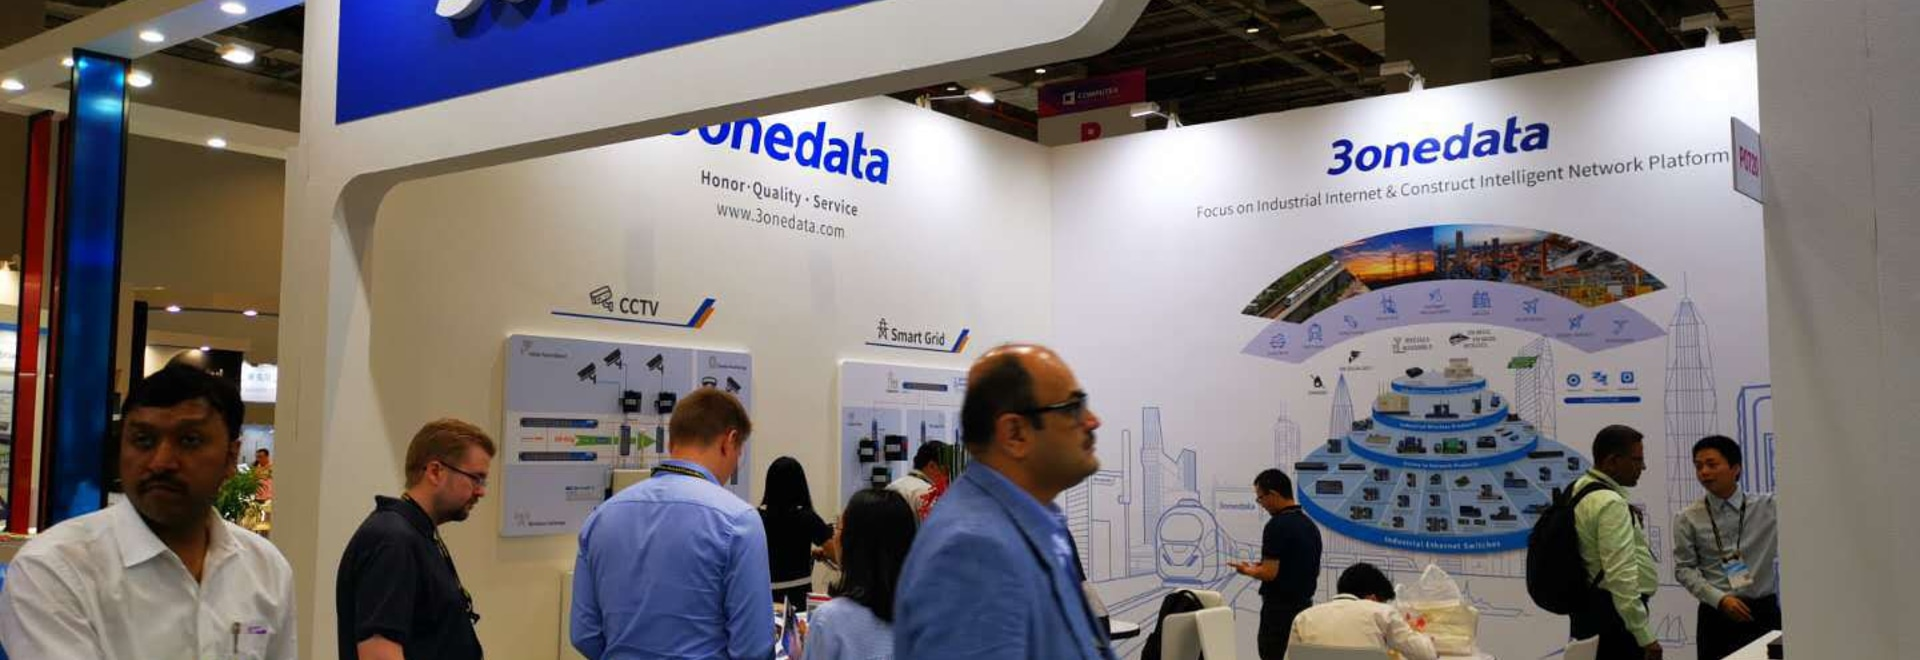 Live News of 3onedata From COMPUTEX 2019